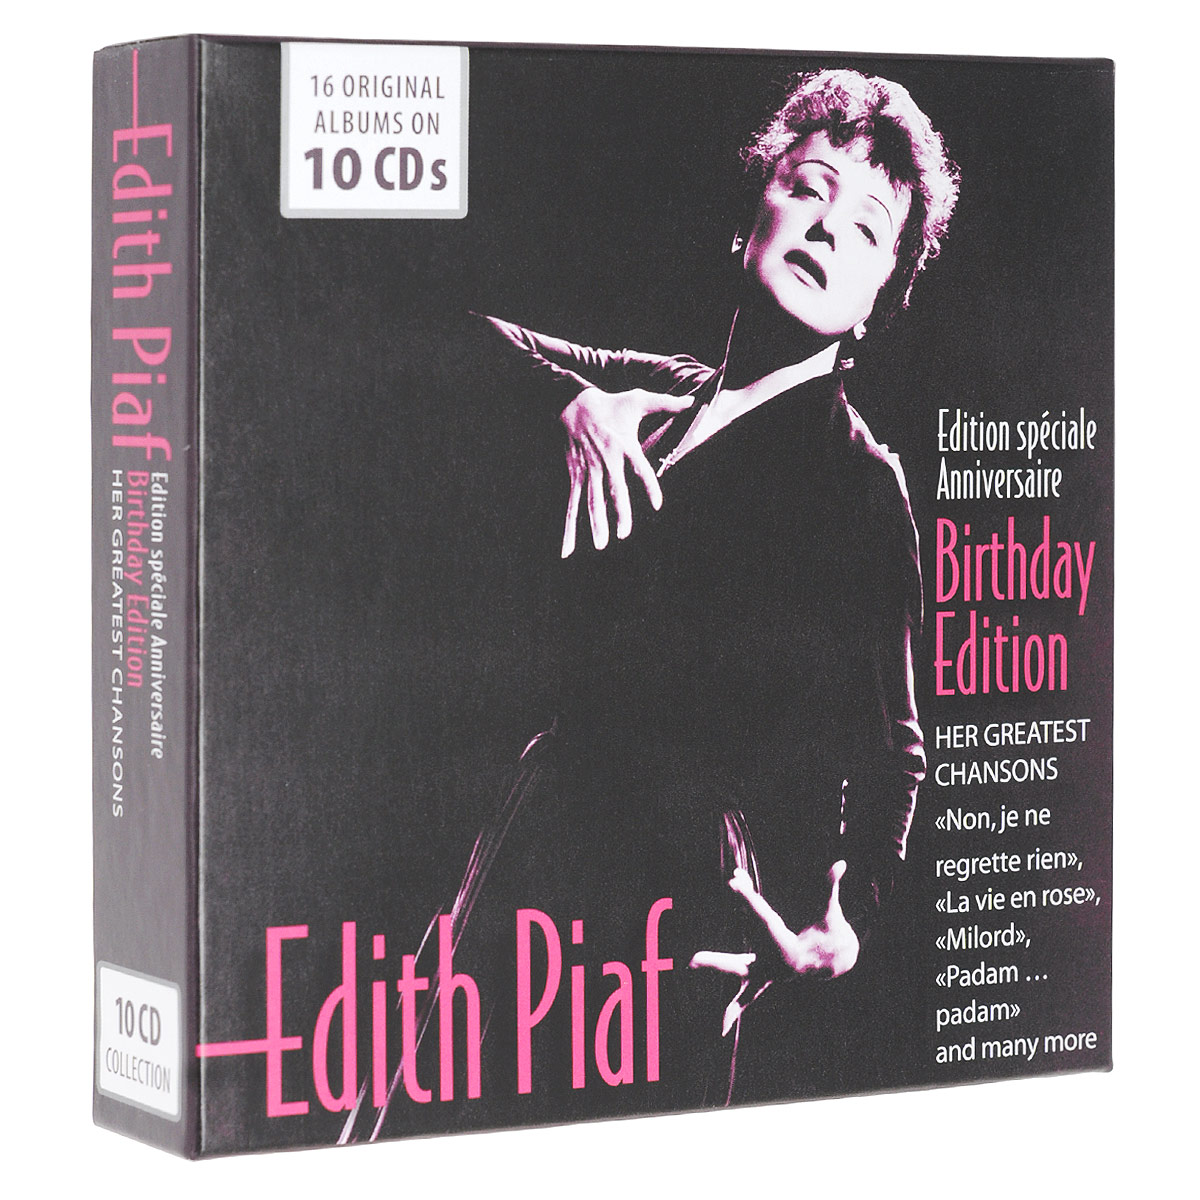 Эдит Пиаф Edith Piaf. Her Greatest Chansons. Birthday Edition. Edition Speciale Anniversaire (10 CD) эдит пиаф edith piaf fais moi valser 2 cd